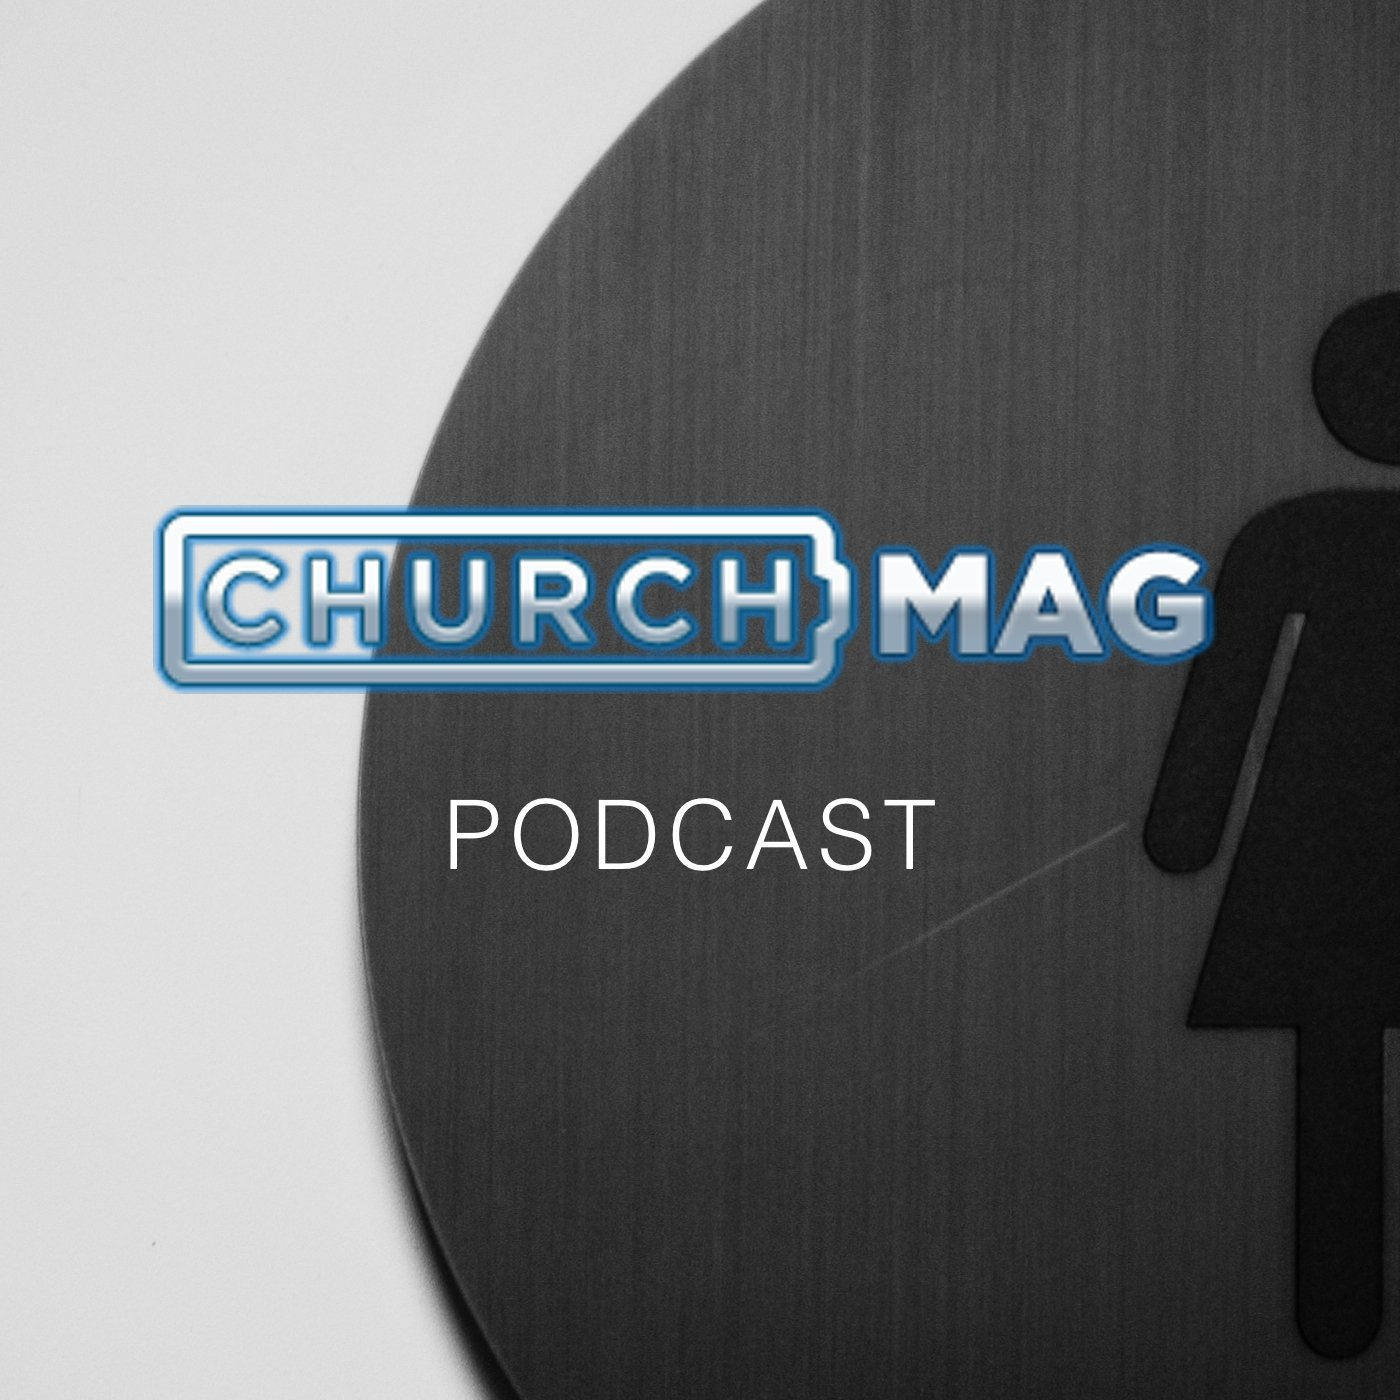 What About Women in Church Tech? [Podcast]